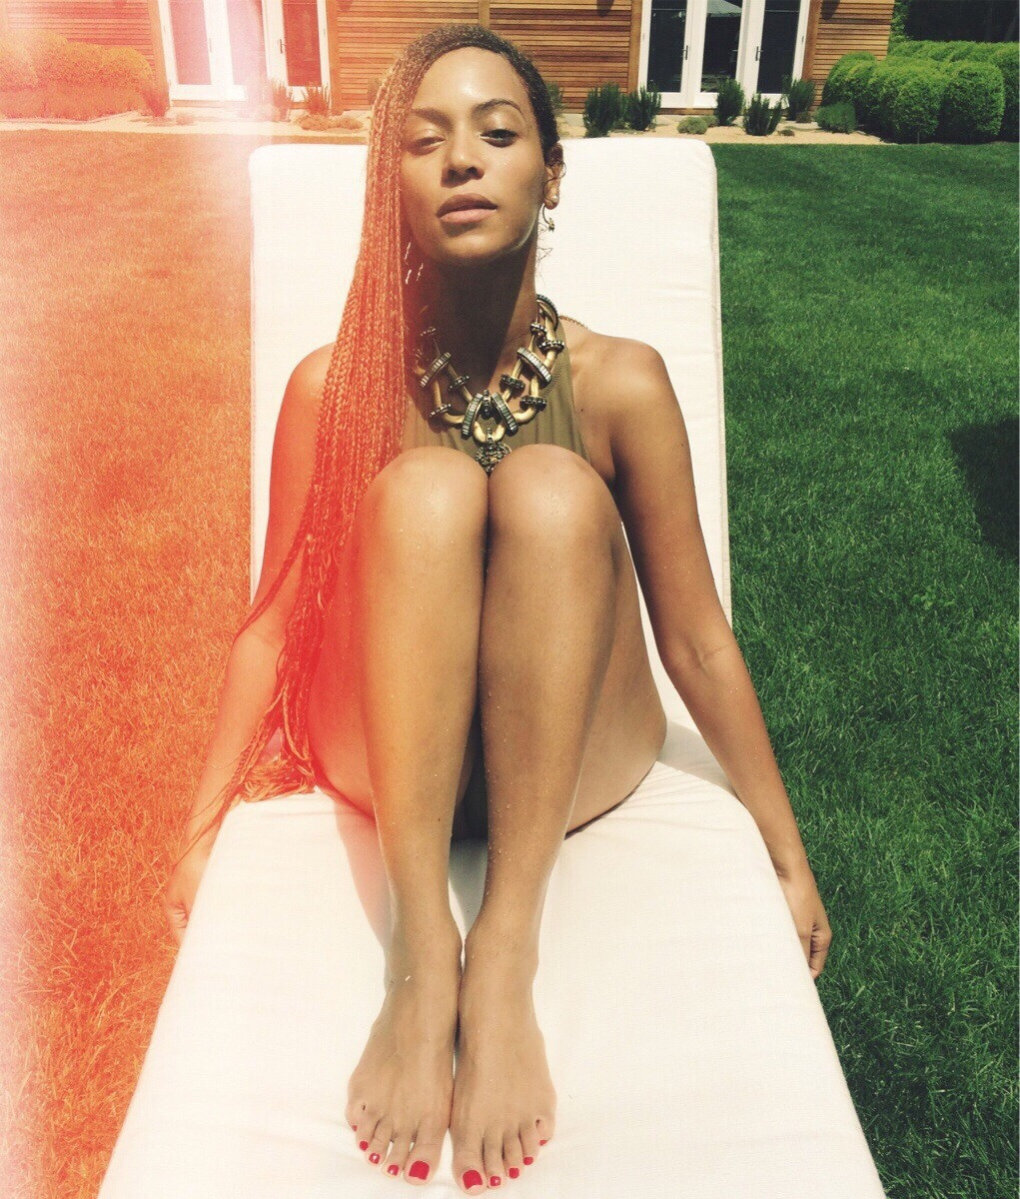 beyonc 1 - jay-z wife hot sexy beyoncé (10 photos)